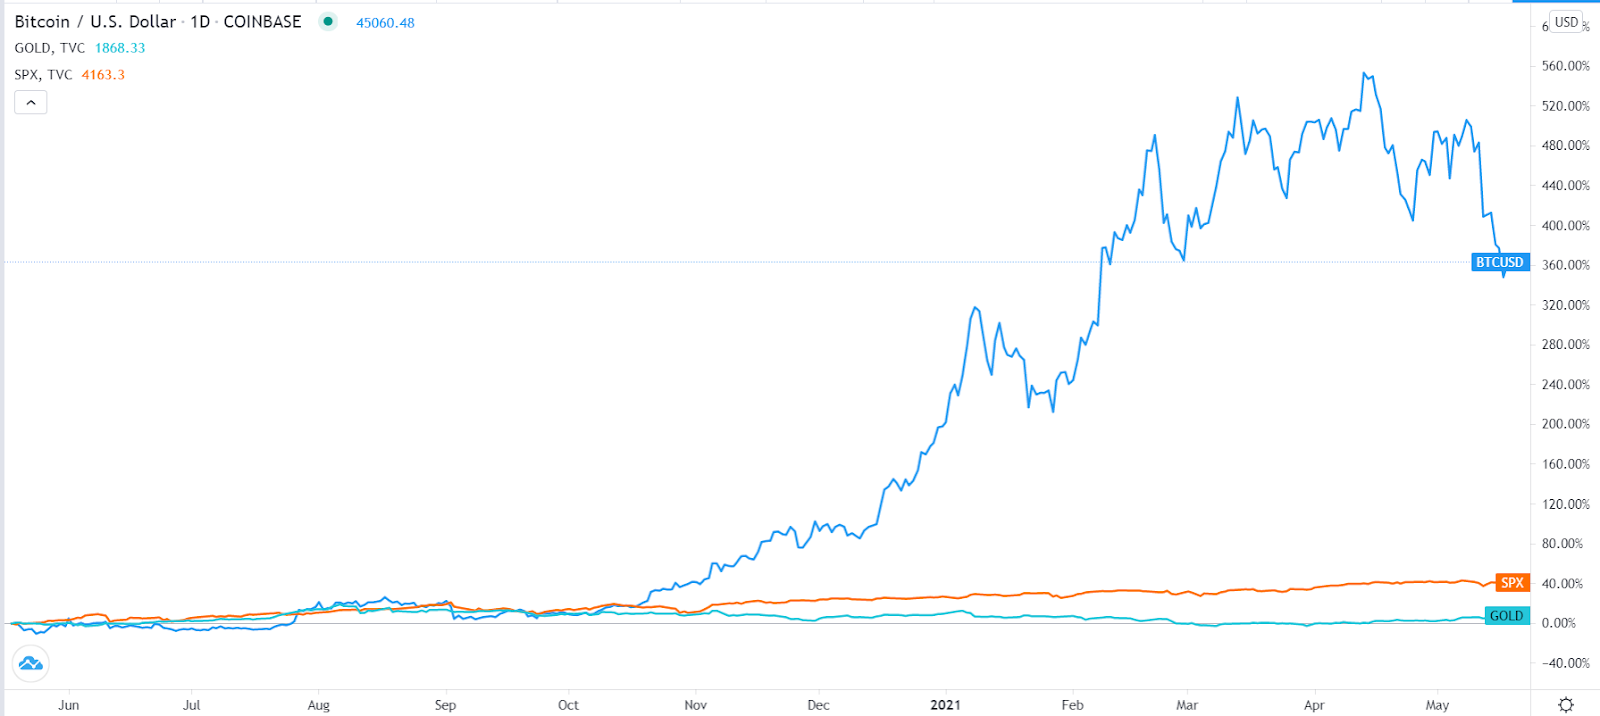 Bitcoin vs S&P 500 and gold